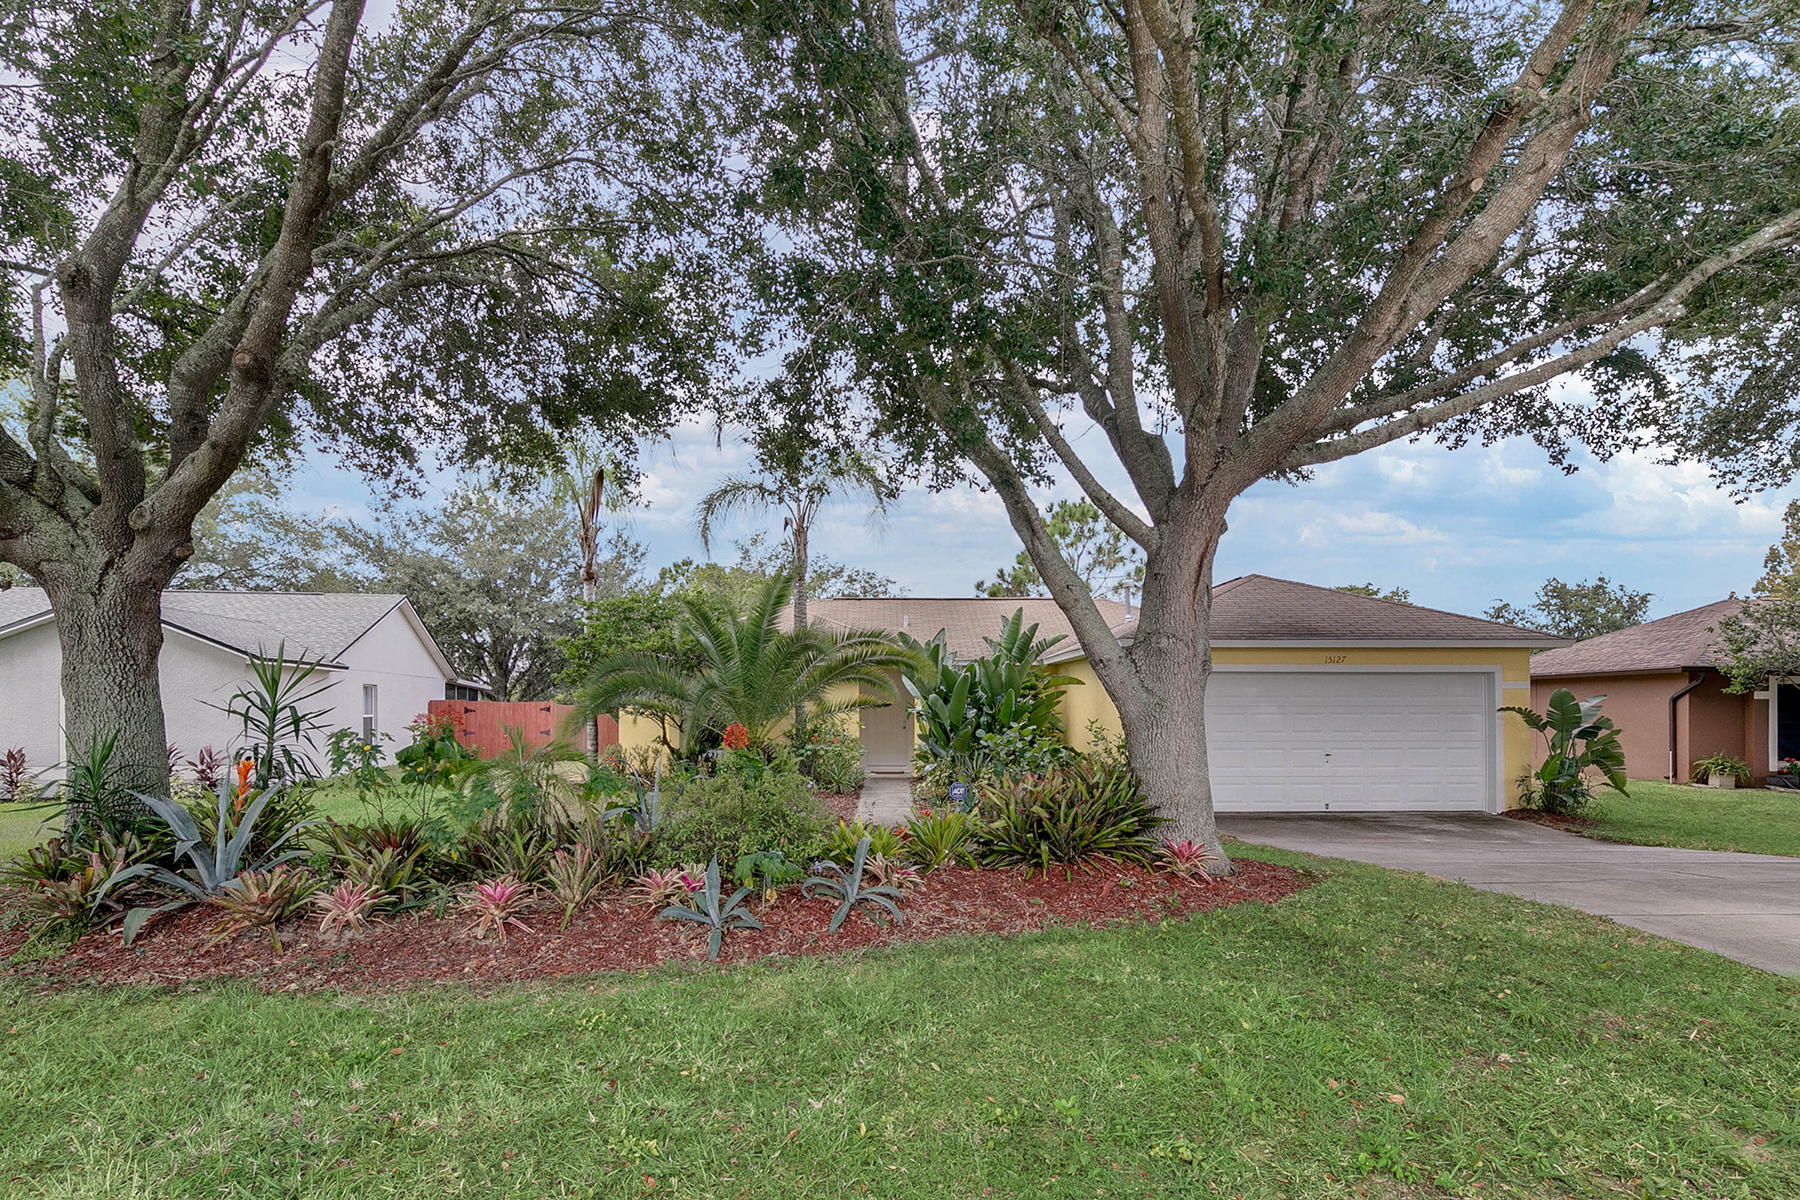 Single Family Homes for Active at CLERMONT-ORLANDO 15127 Margaux Dr Clermont, Florida 34714 United States